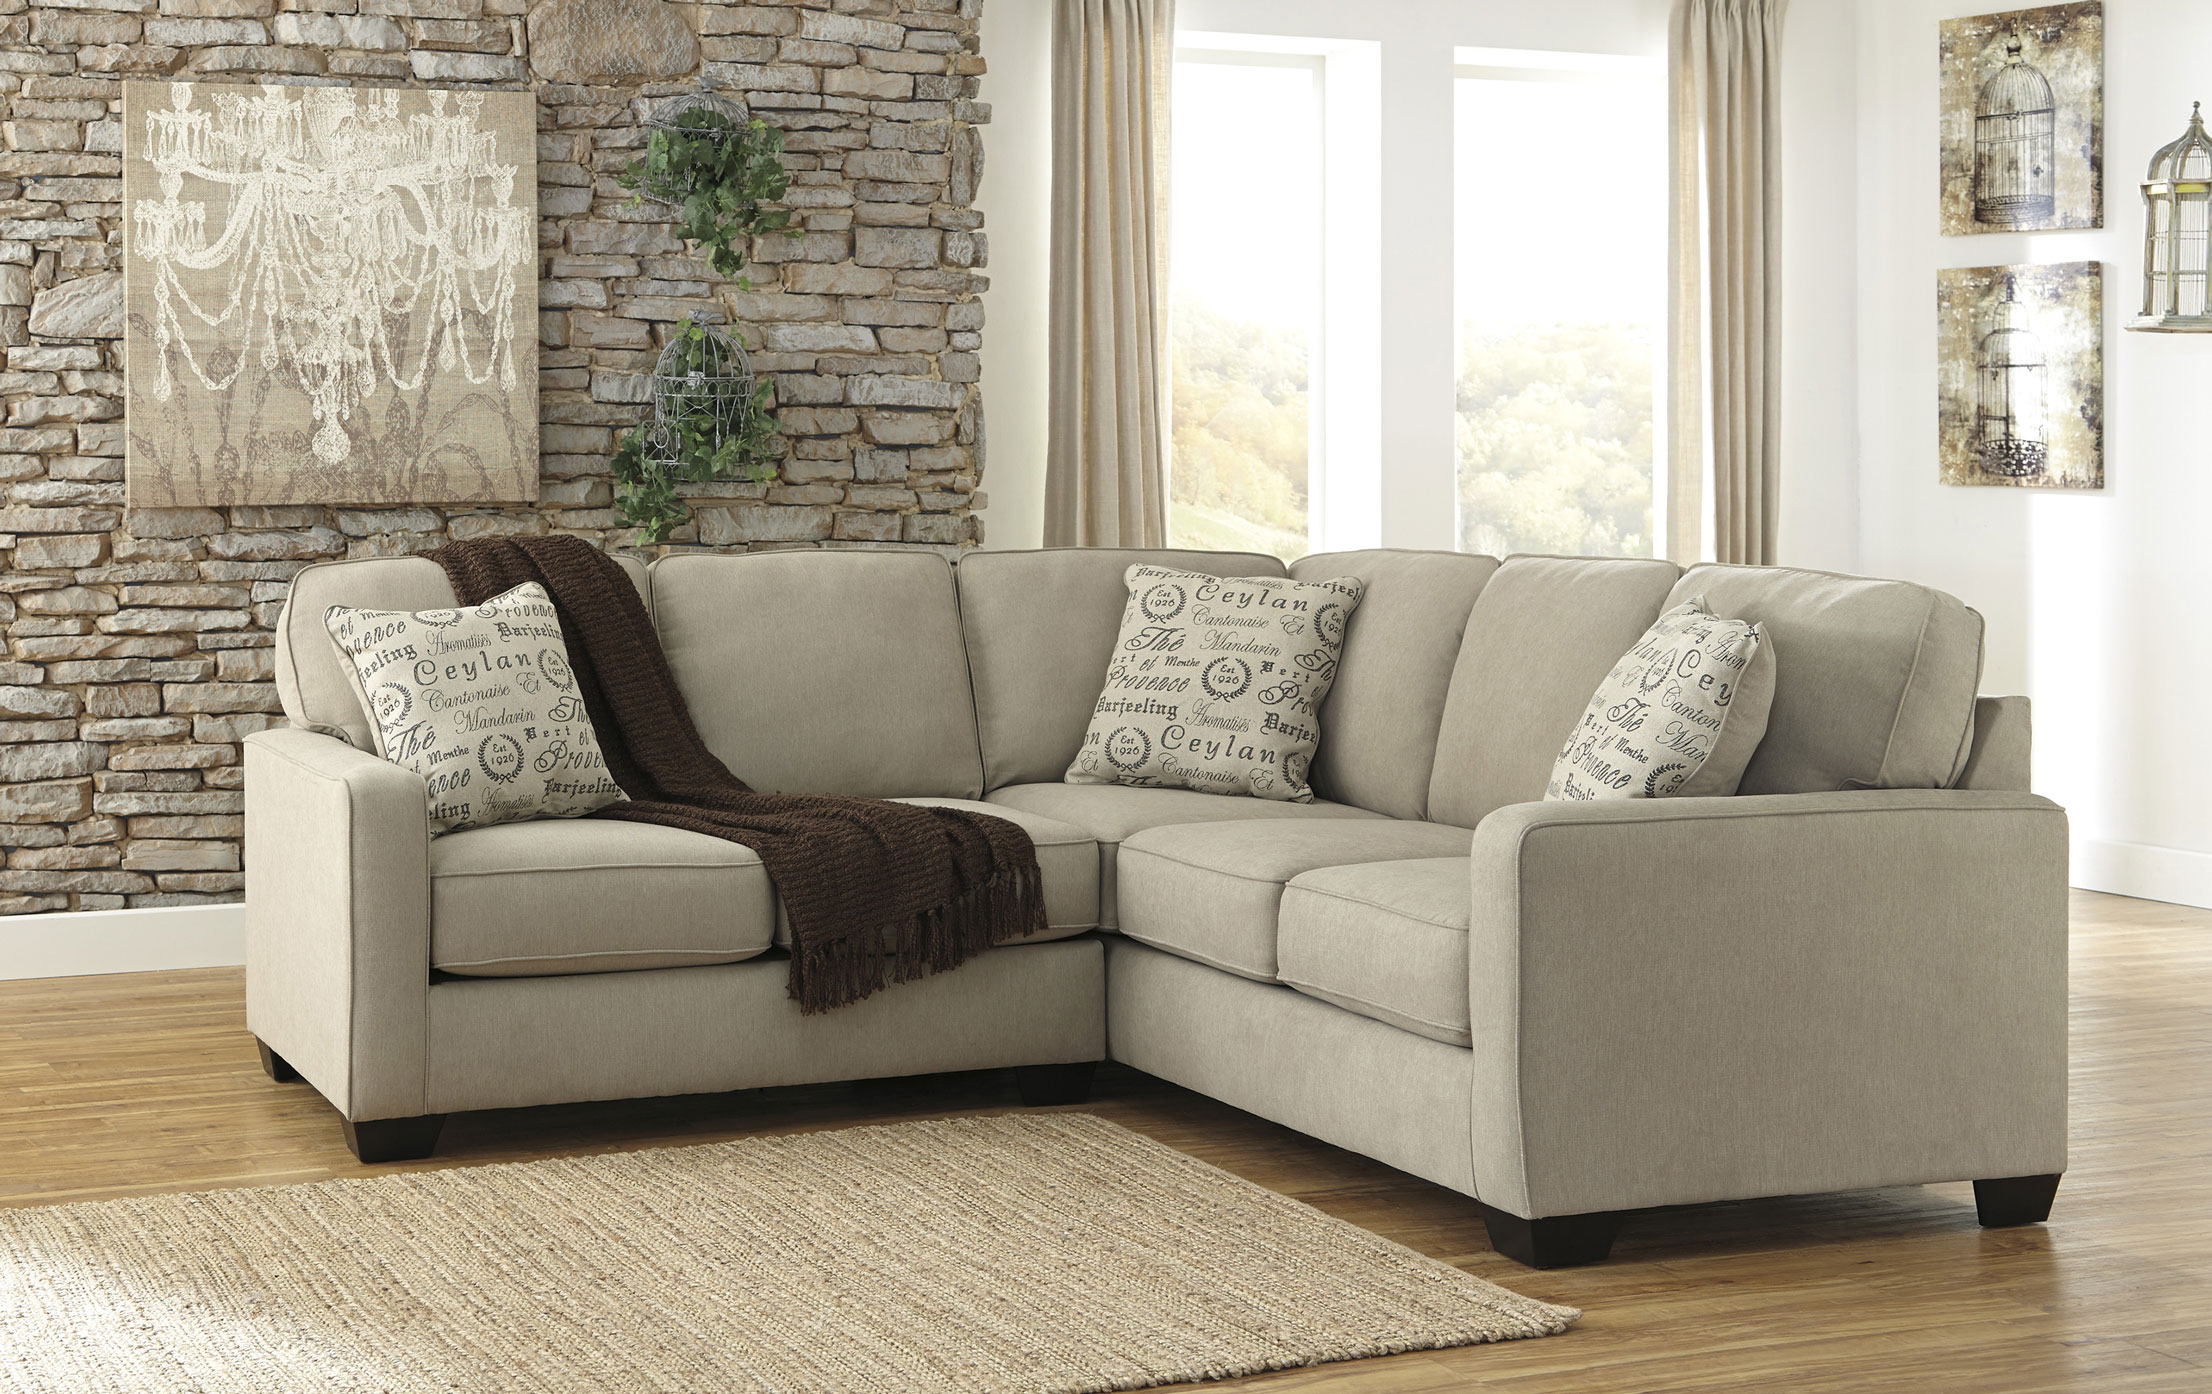 sectional sofa purchase one cushion or two buying guide appliances connection